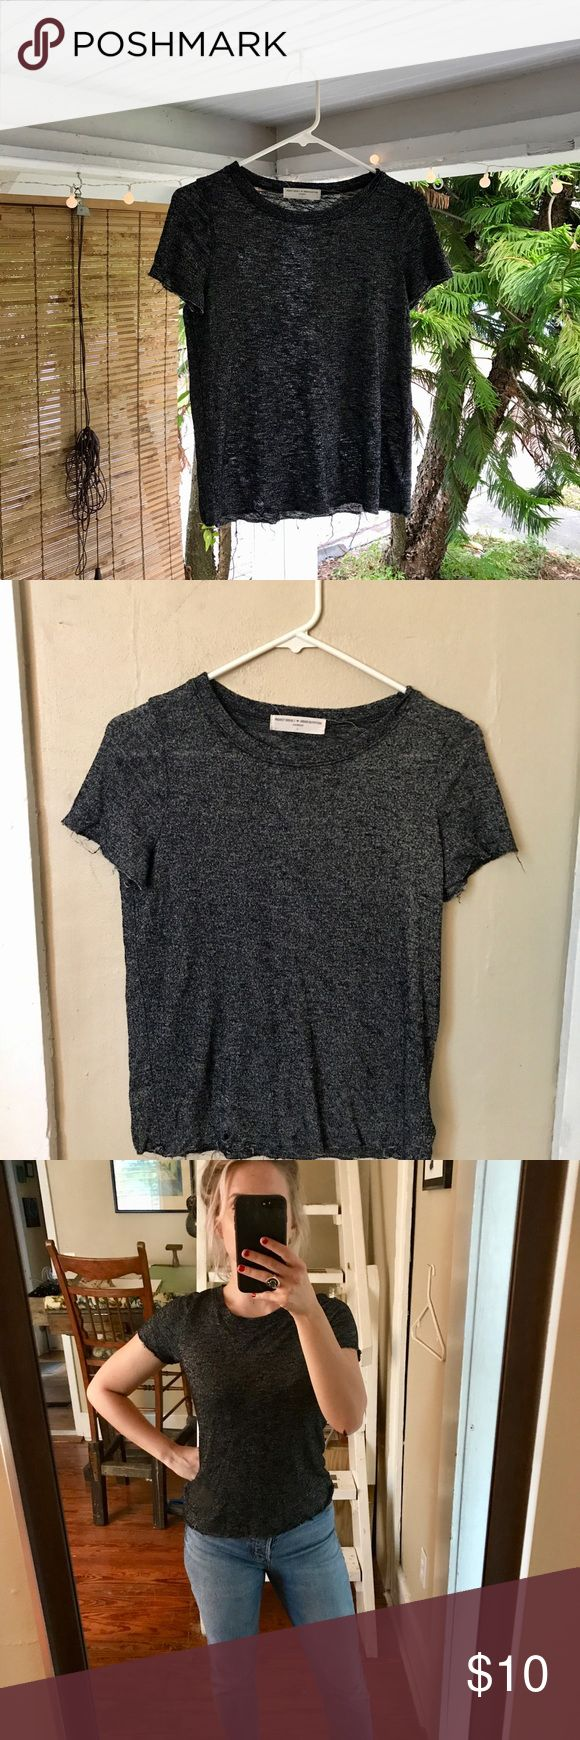 ⚙️Project Social Urbanoutfitters T Shirt ⚙️ This semi sheer, grey/black Project Social tee is the definition of comfort. Perfect for casual house hanging or easily dressed up with black skinny jeans and boots. This brand is an Urban classic and lasts forever! Project Social T Tops Tees - Short Sleeve